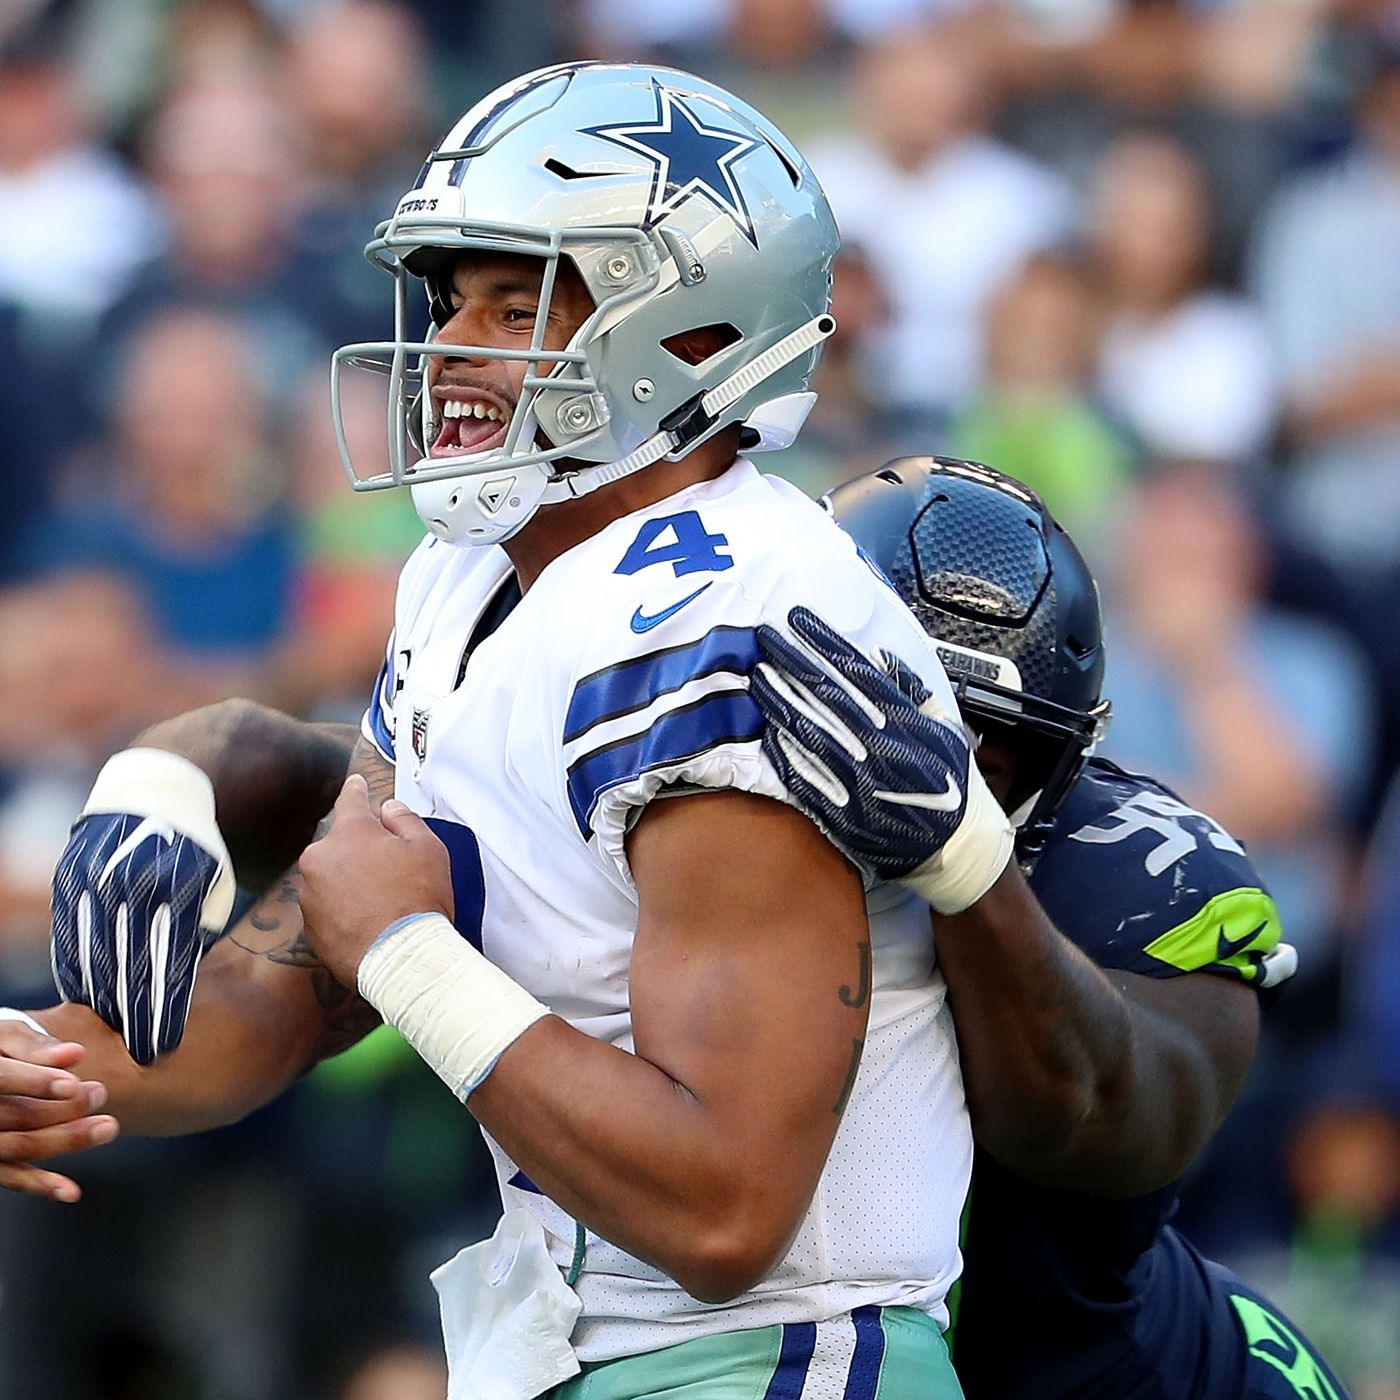 eba74c4c Why we think the Seahawks can beat the Cowboys again, this time in the 2019  NFL playoffs